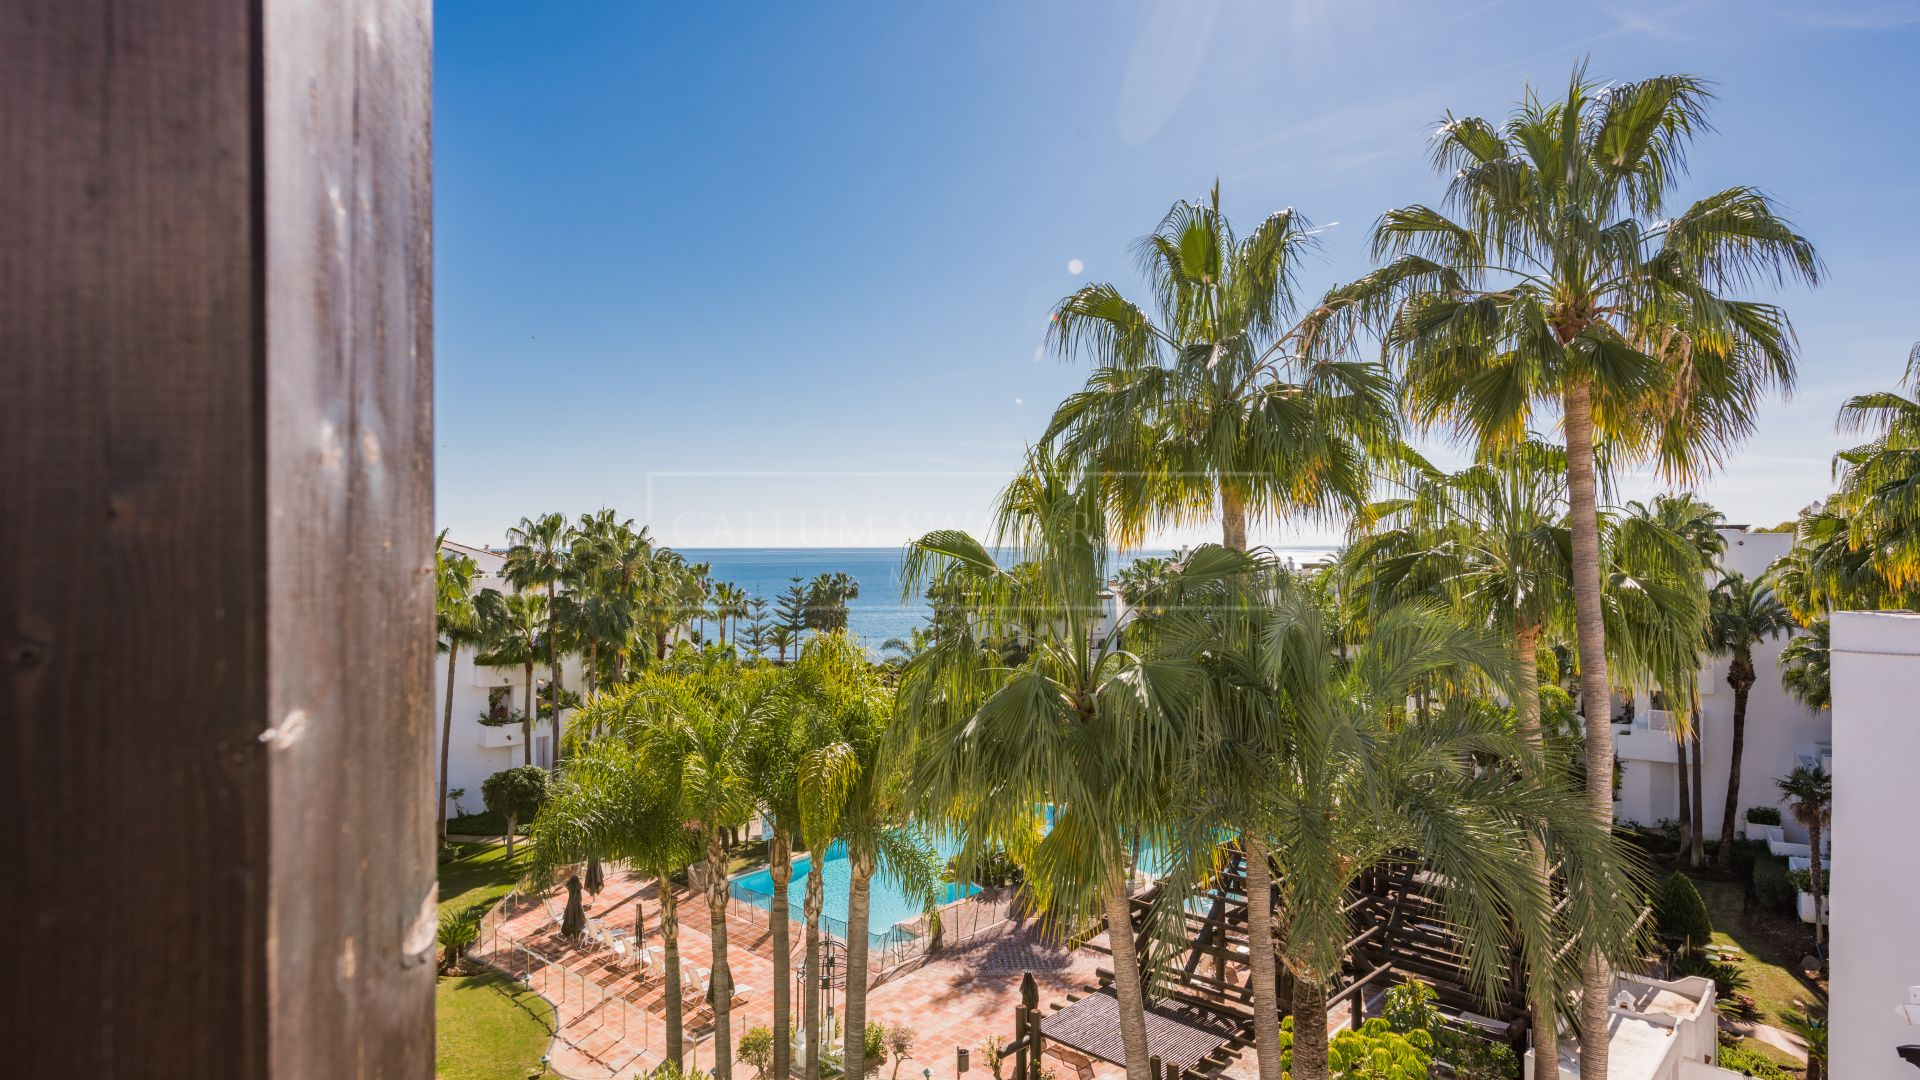 Elegant duplex penthouse in Japanese Gardens of Marina Puente Romano the most sought after location of Marbella's Golden Mile